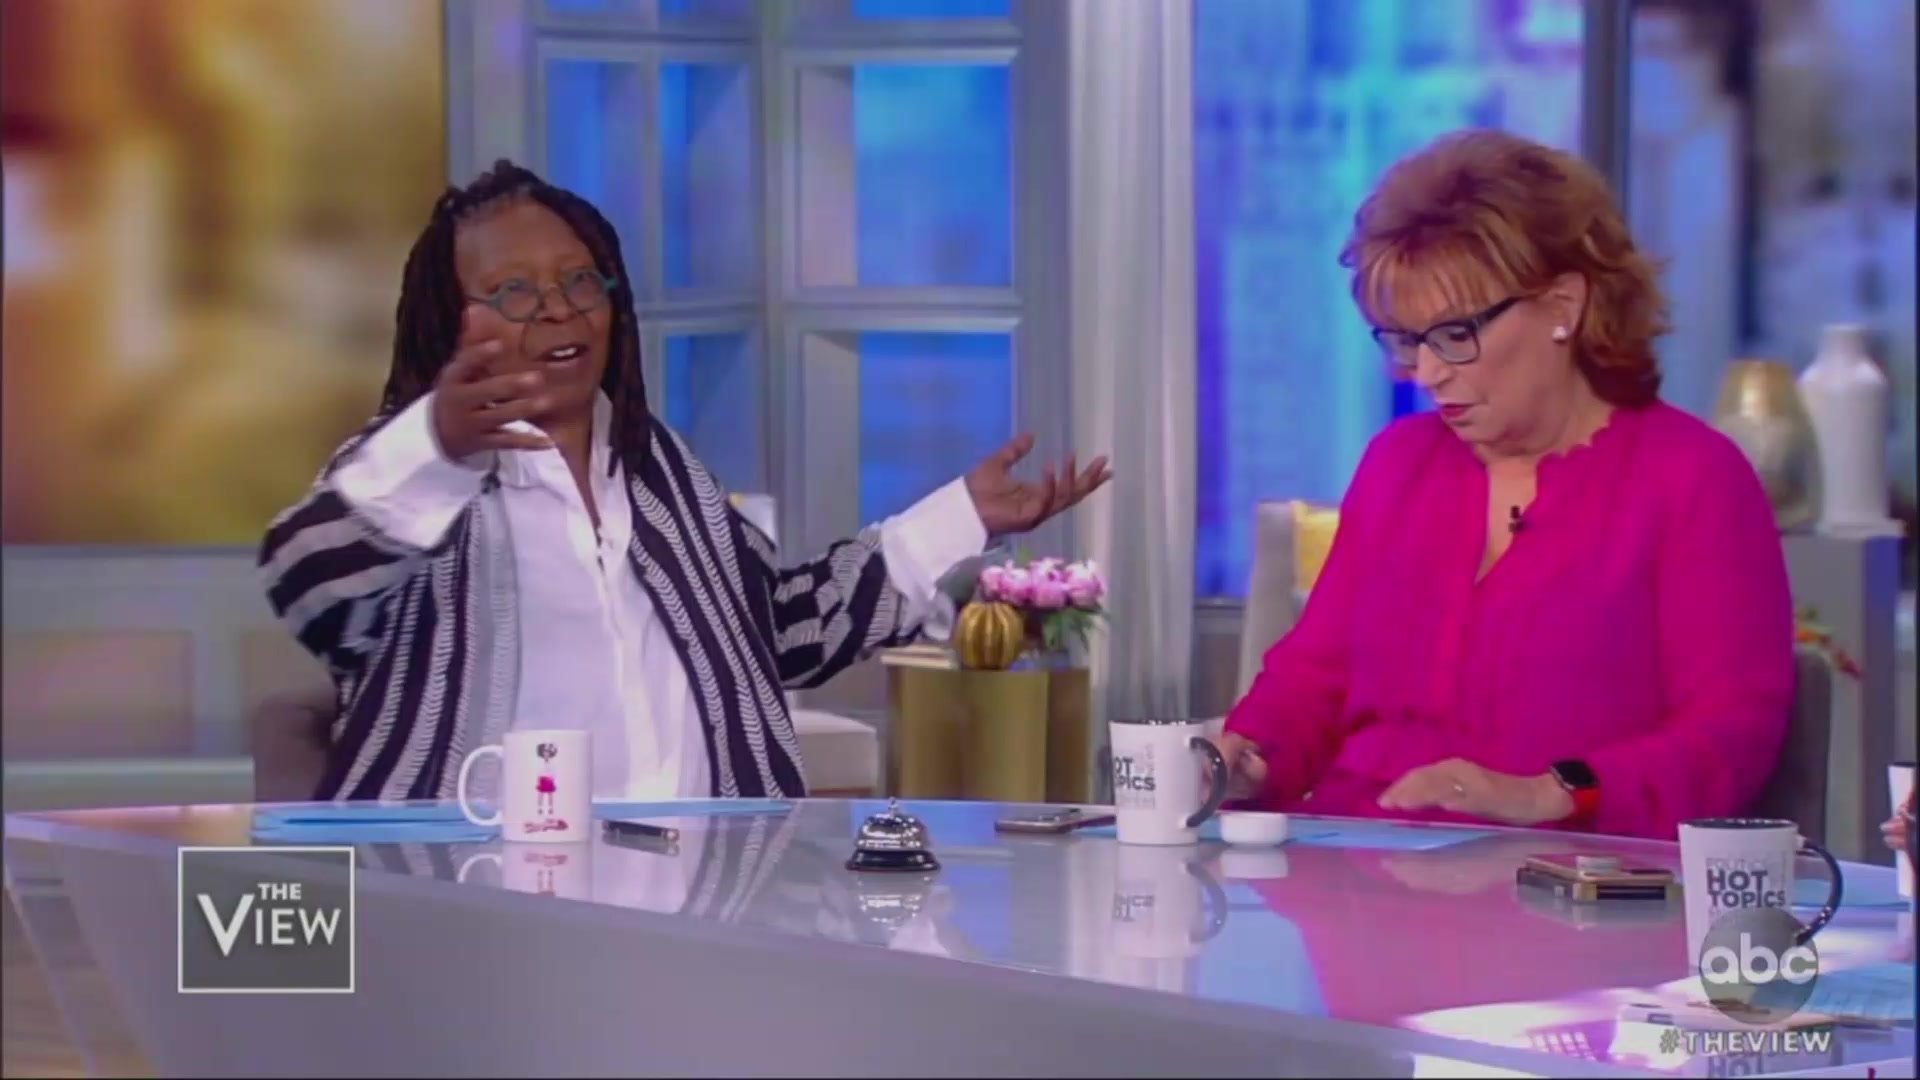 The View's Whoopi Goldberg, Joy Behar Bleeped Out While Blasting Trump